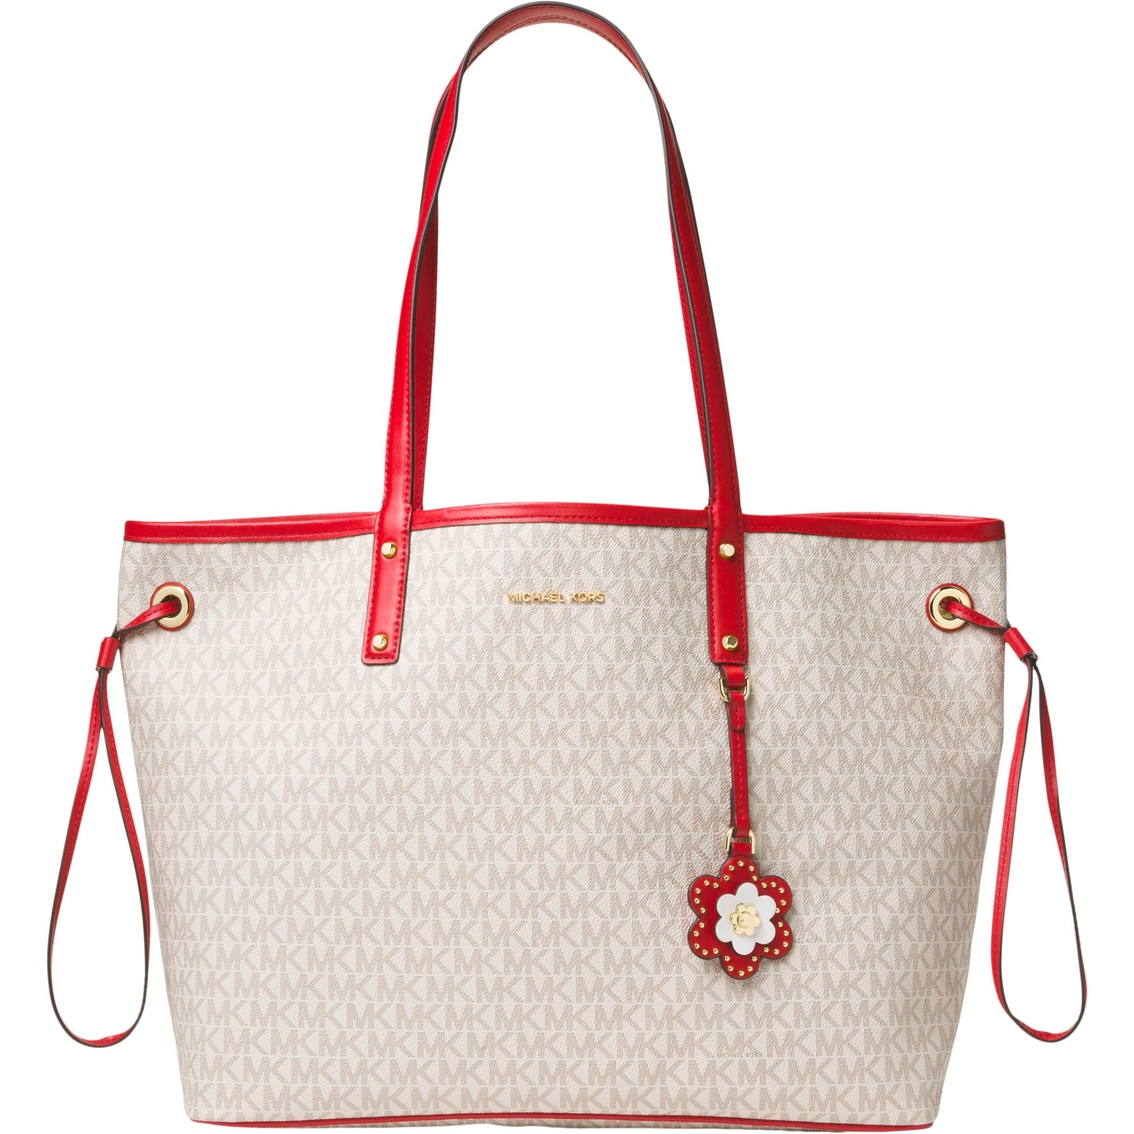 3c9e36f554f9 Michael Kors Carter Large Tote Signature | Handbags | Shop The Exchange